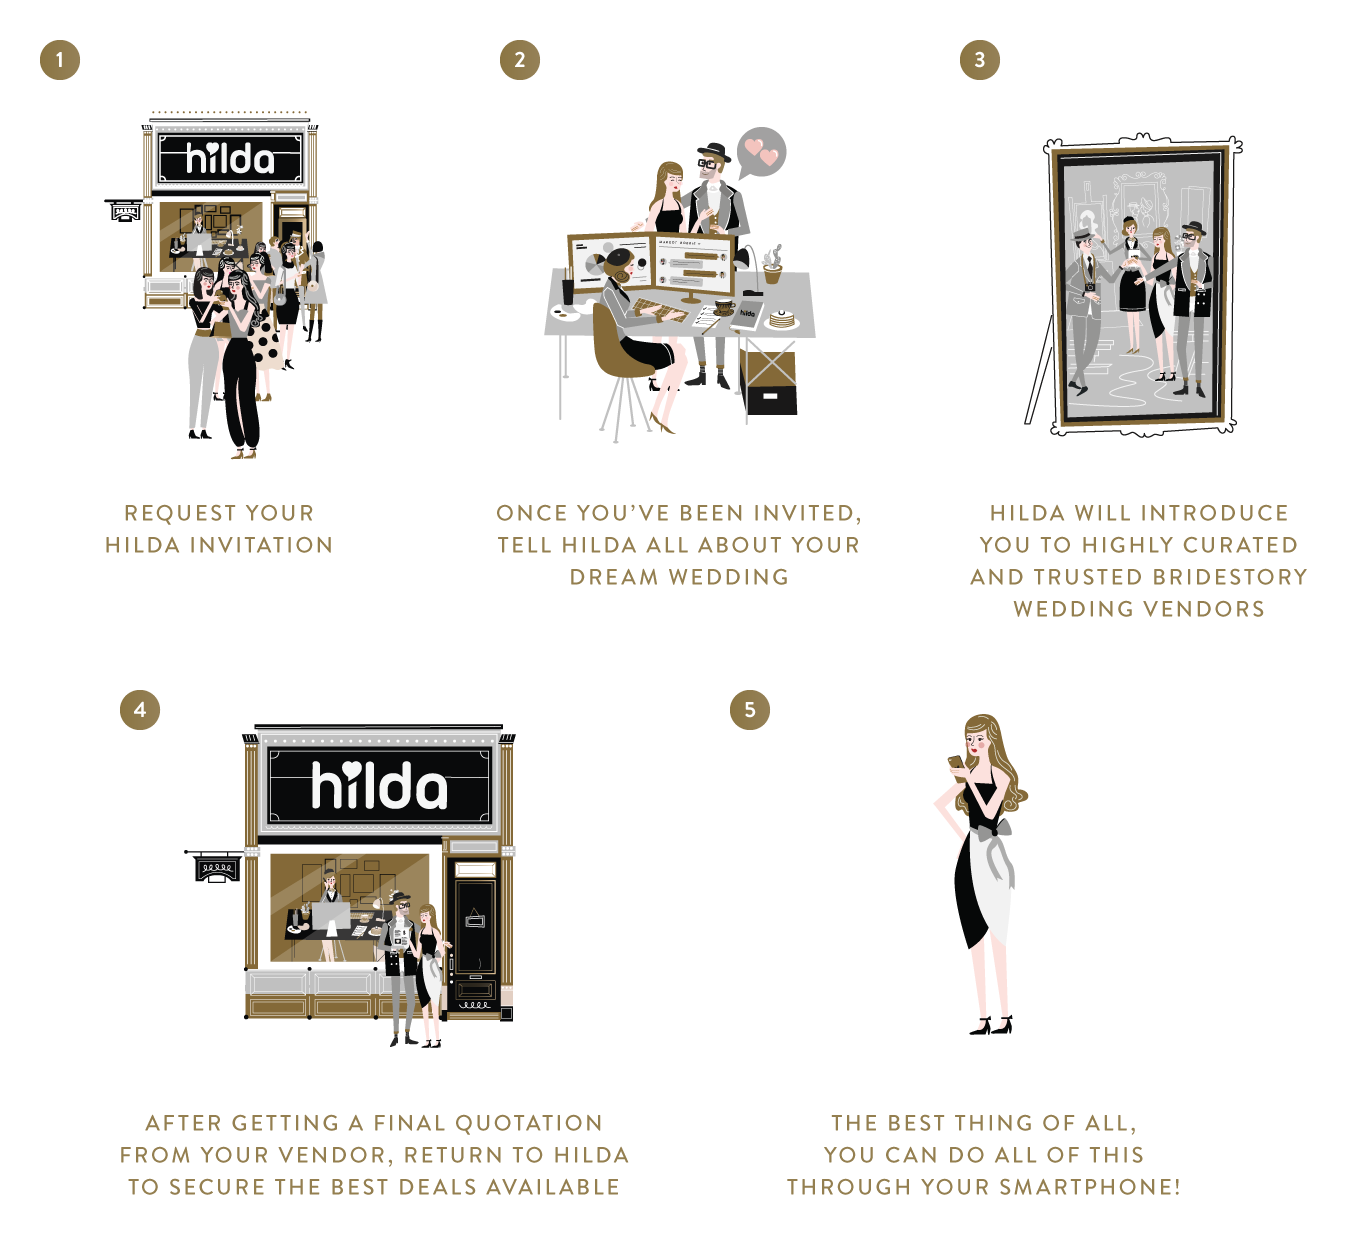 Get the Best Deals from Bridestory Vendors with Hilda Image 1